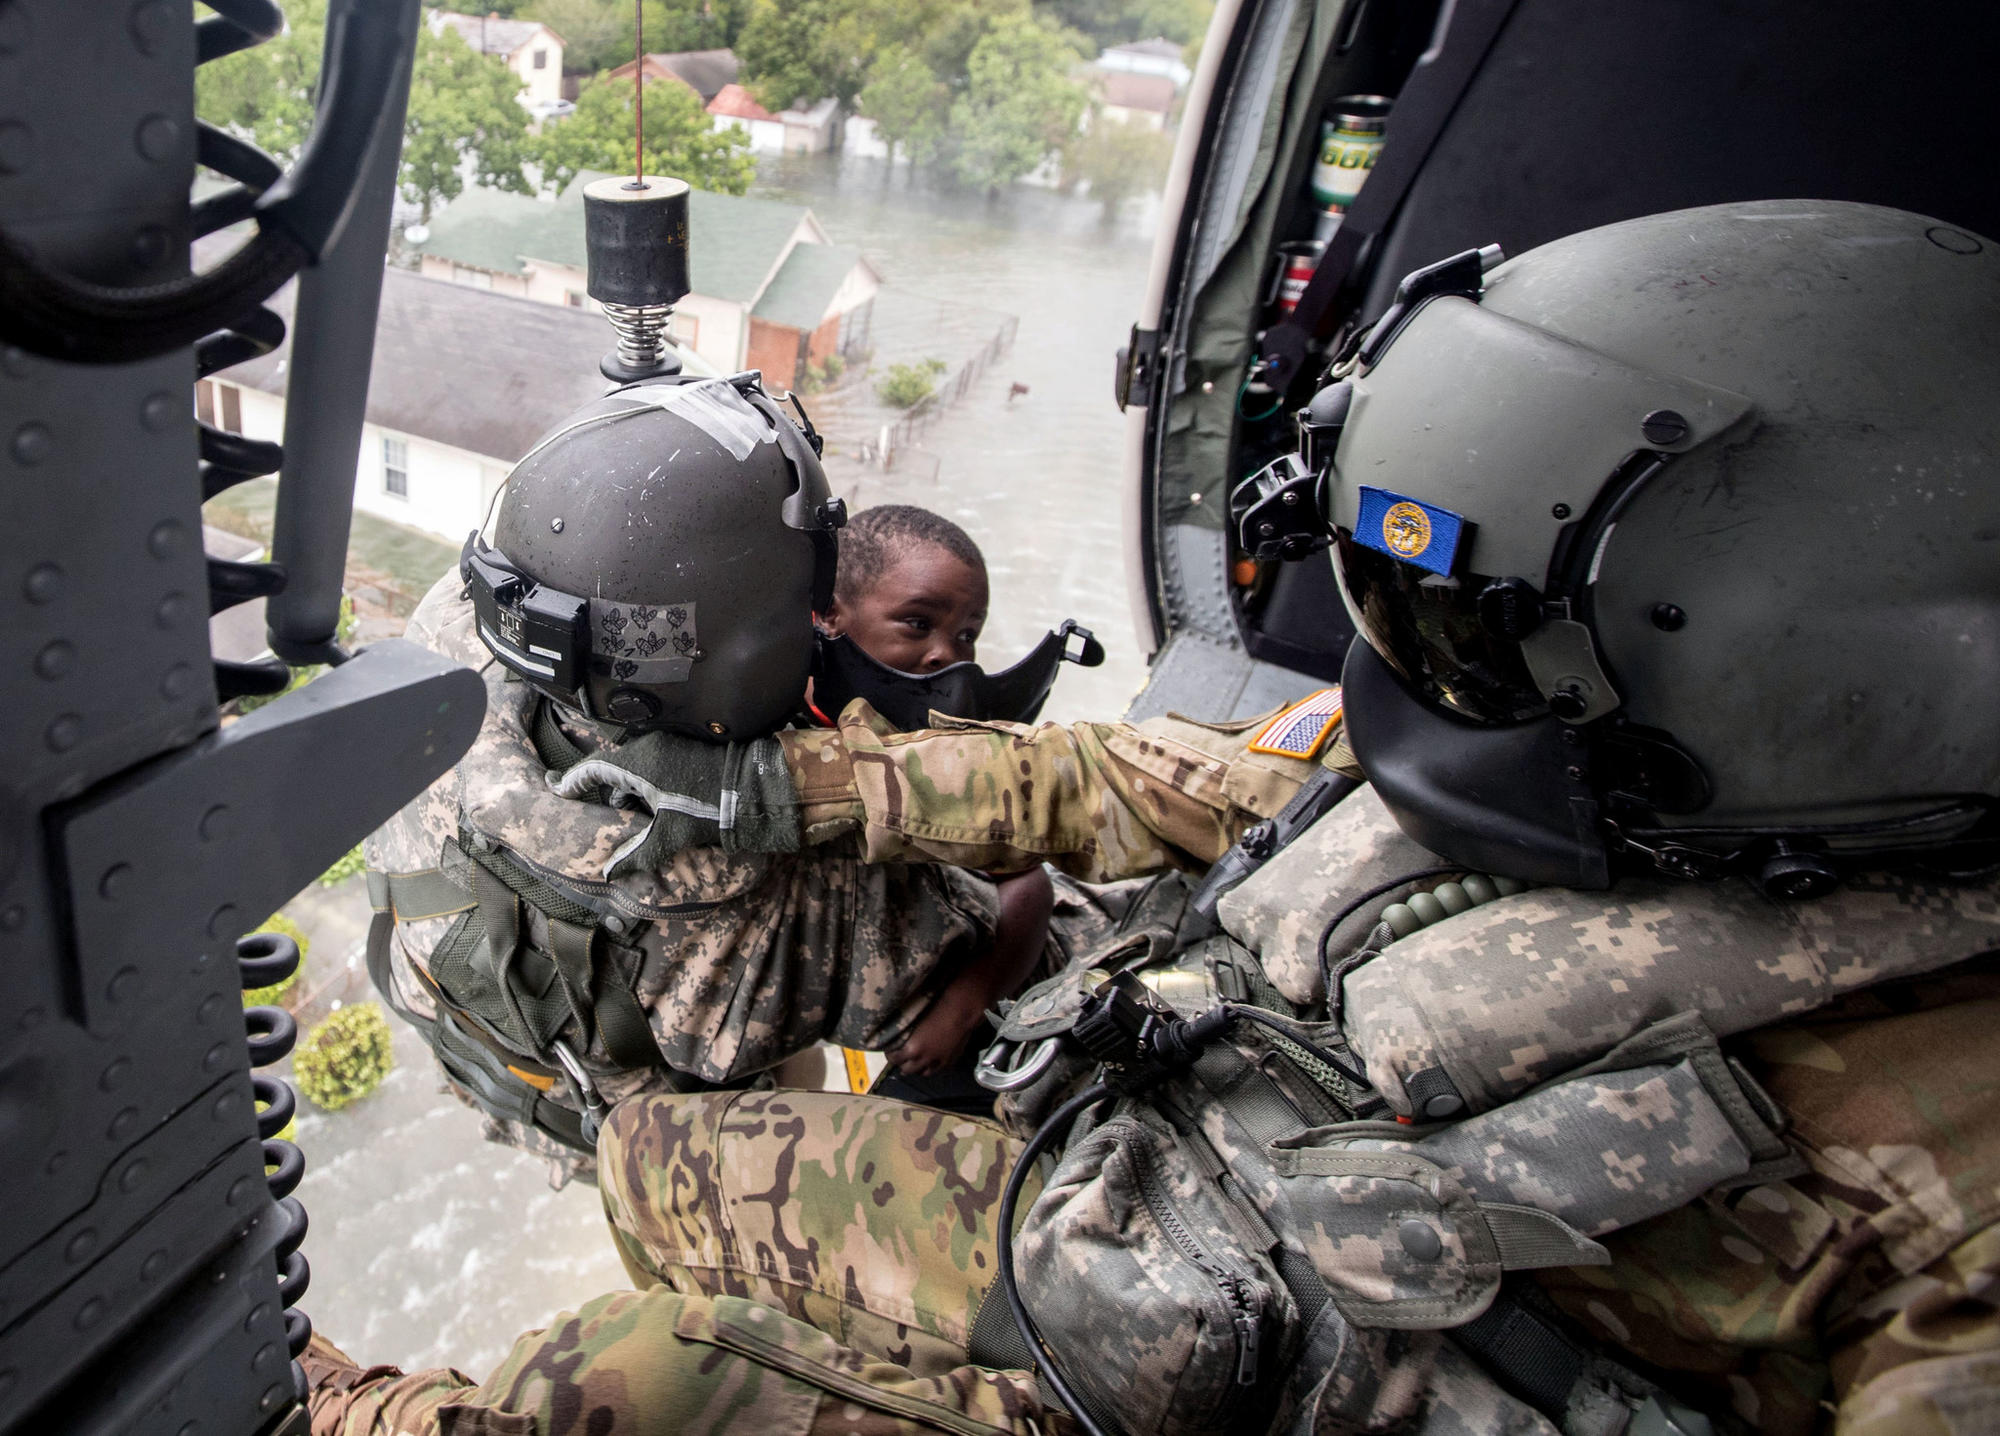 ... Staff Sgt. Lawrence Lind, left, hoists a child into a Black Hawk helicopter